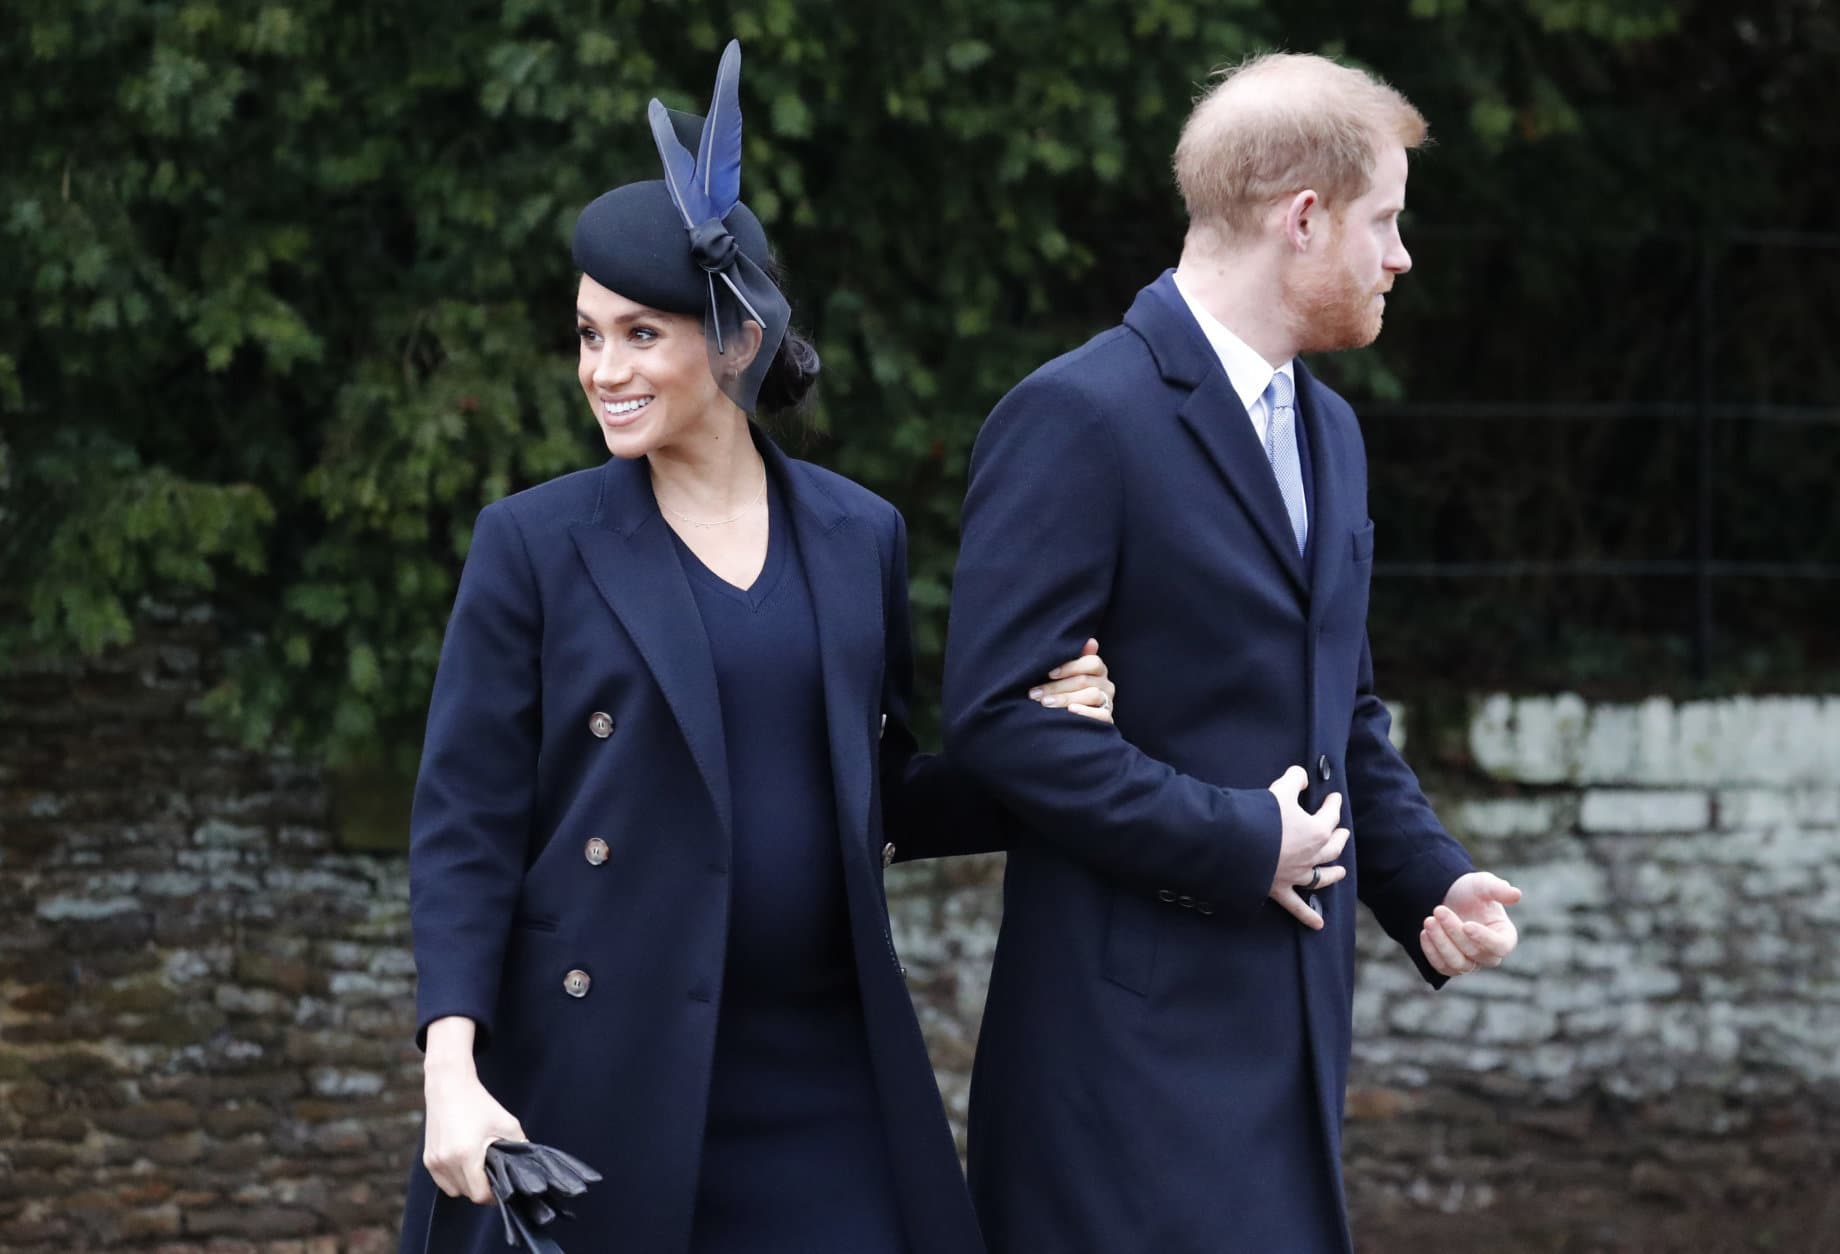 Britain's Prince Harry and Meghan, Duchess of Sussex leave after attending the Christmas day service at St Mary Magdalene Church in Sandringham in Norfolk, England, Tuesday, Dec. 25, 2018. (AP Photo/Frank Augstein)